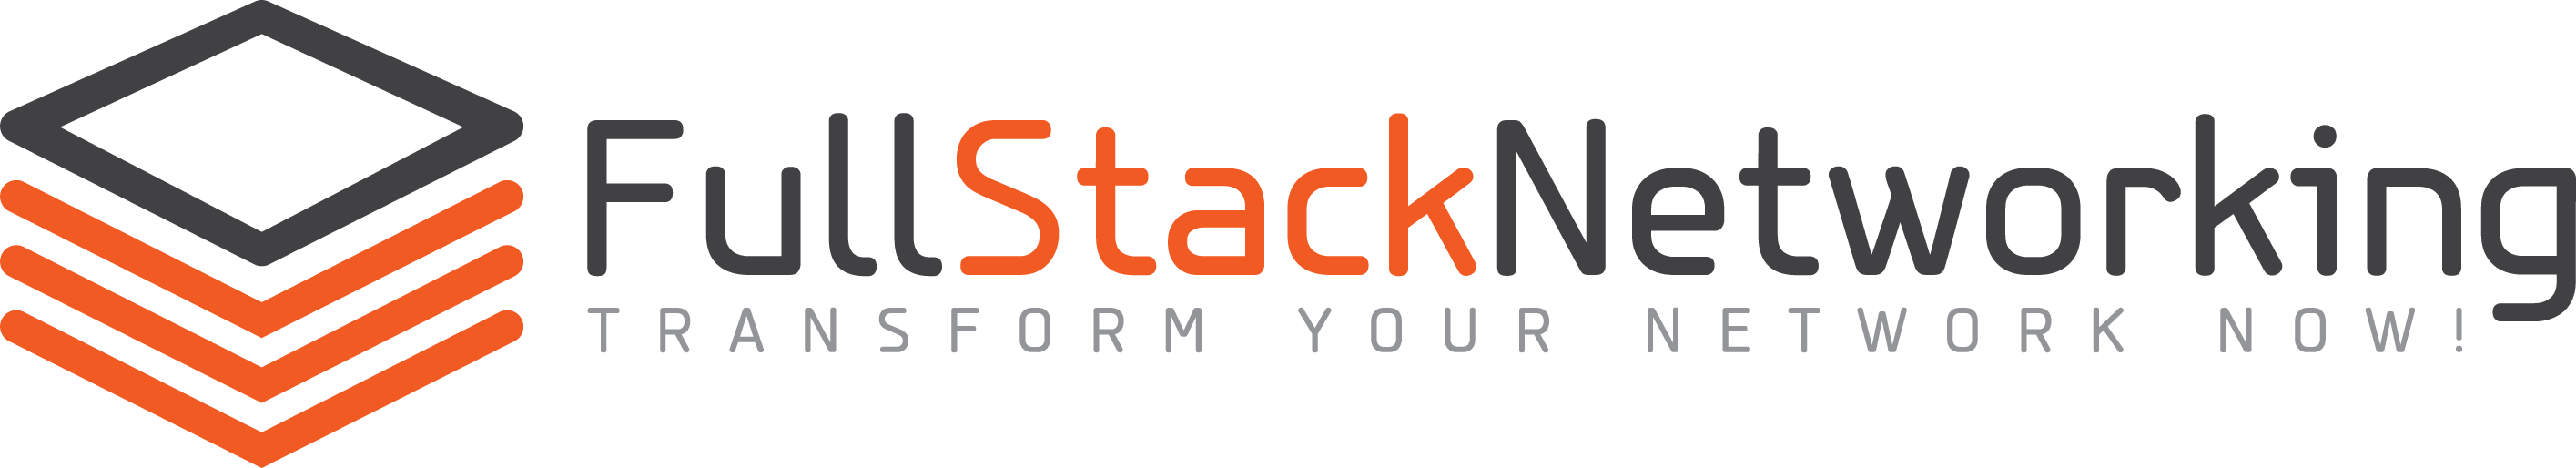 FullStack Networking